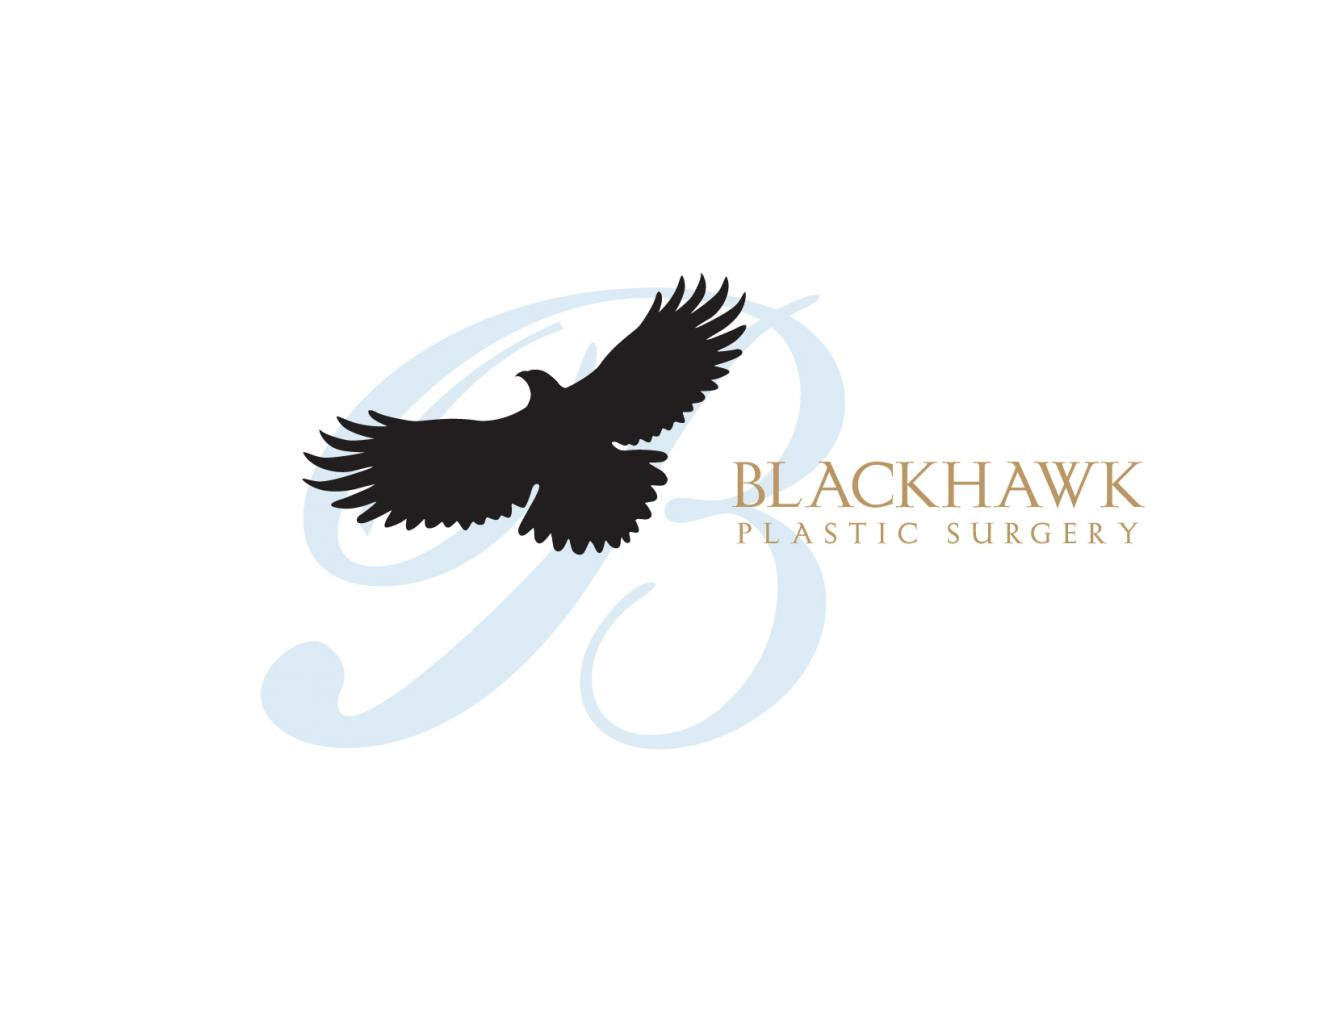 Blackhawk Plastic Surgery Logo